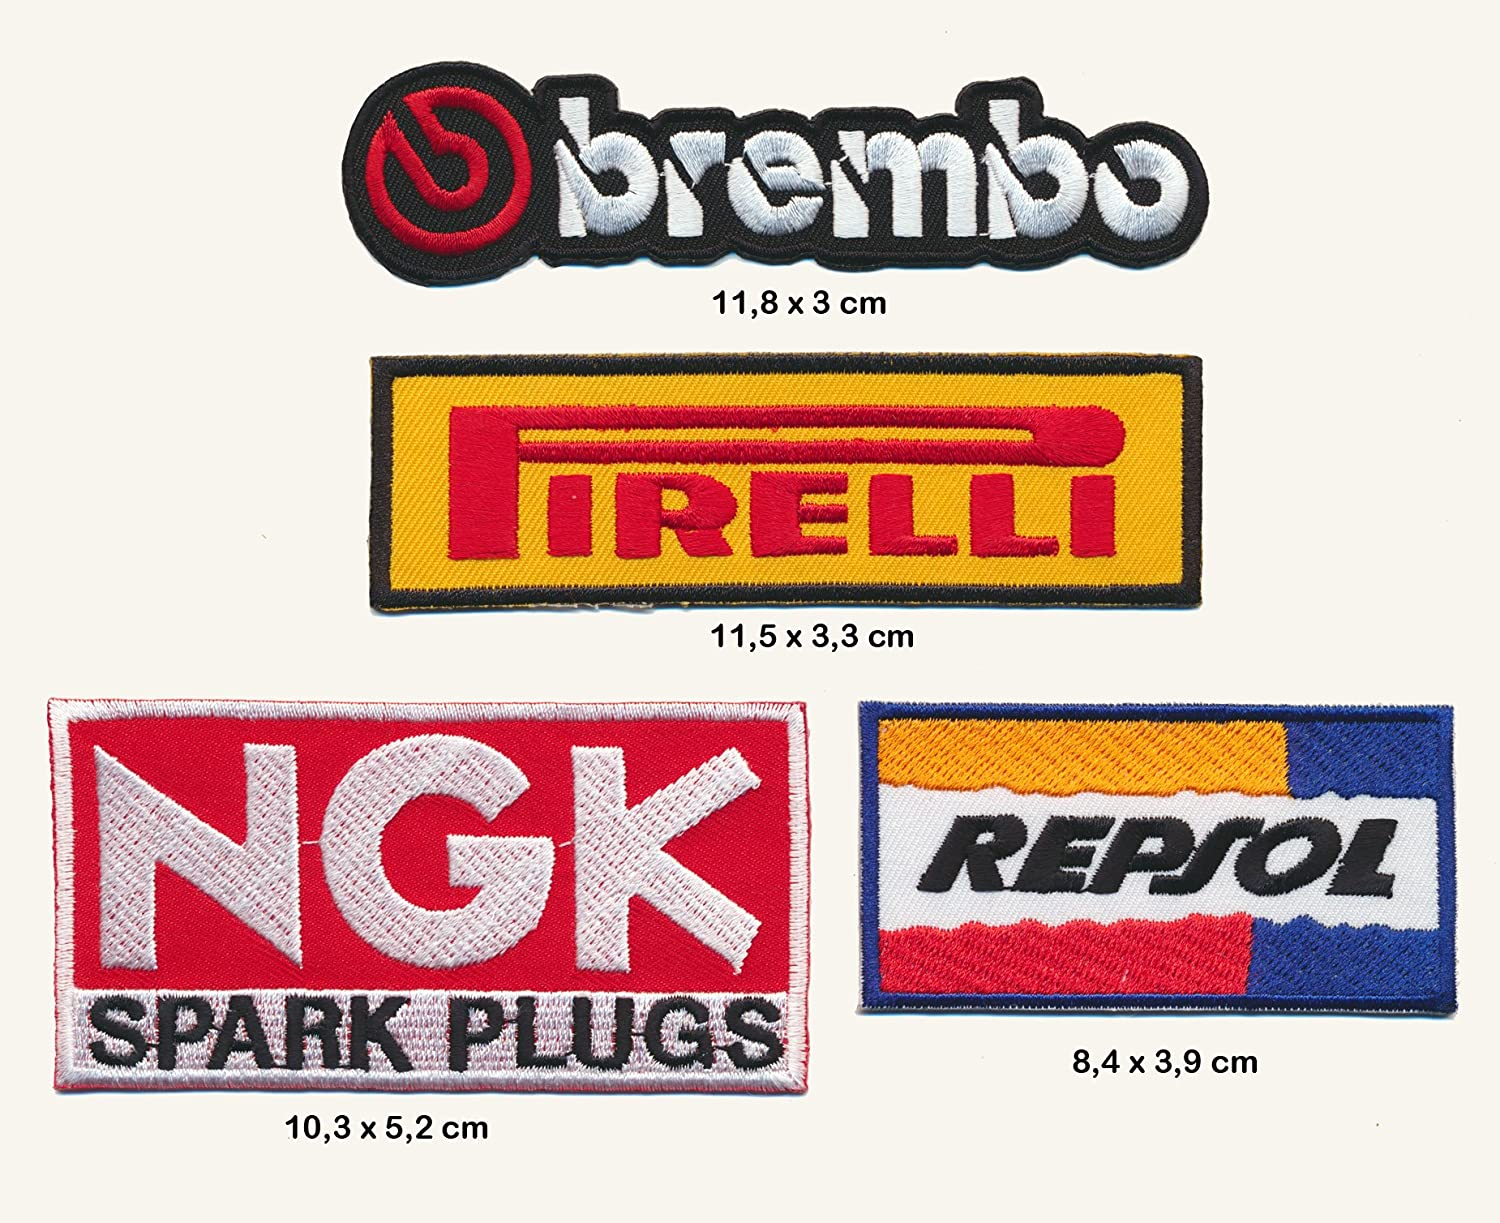 Brembo NGK tapissier Repsol É cusson thermocollant patch Lot de 4  Turbo Livraison Royal Garment